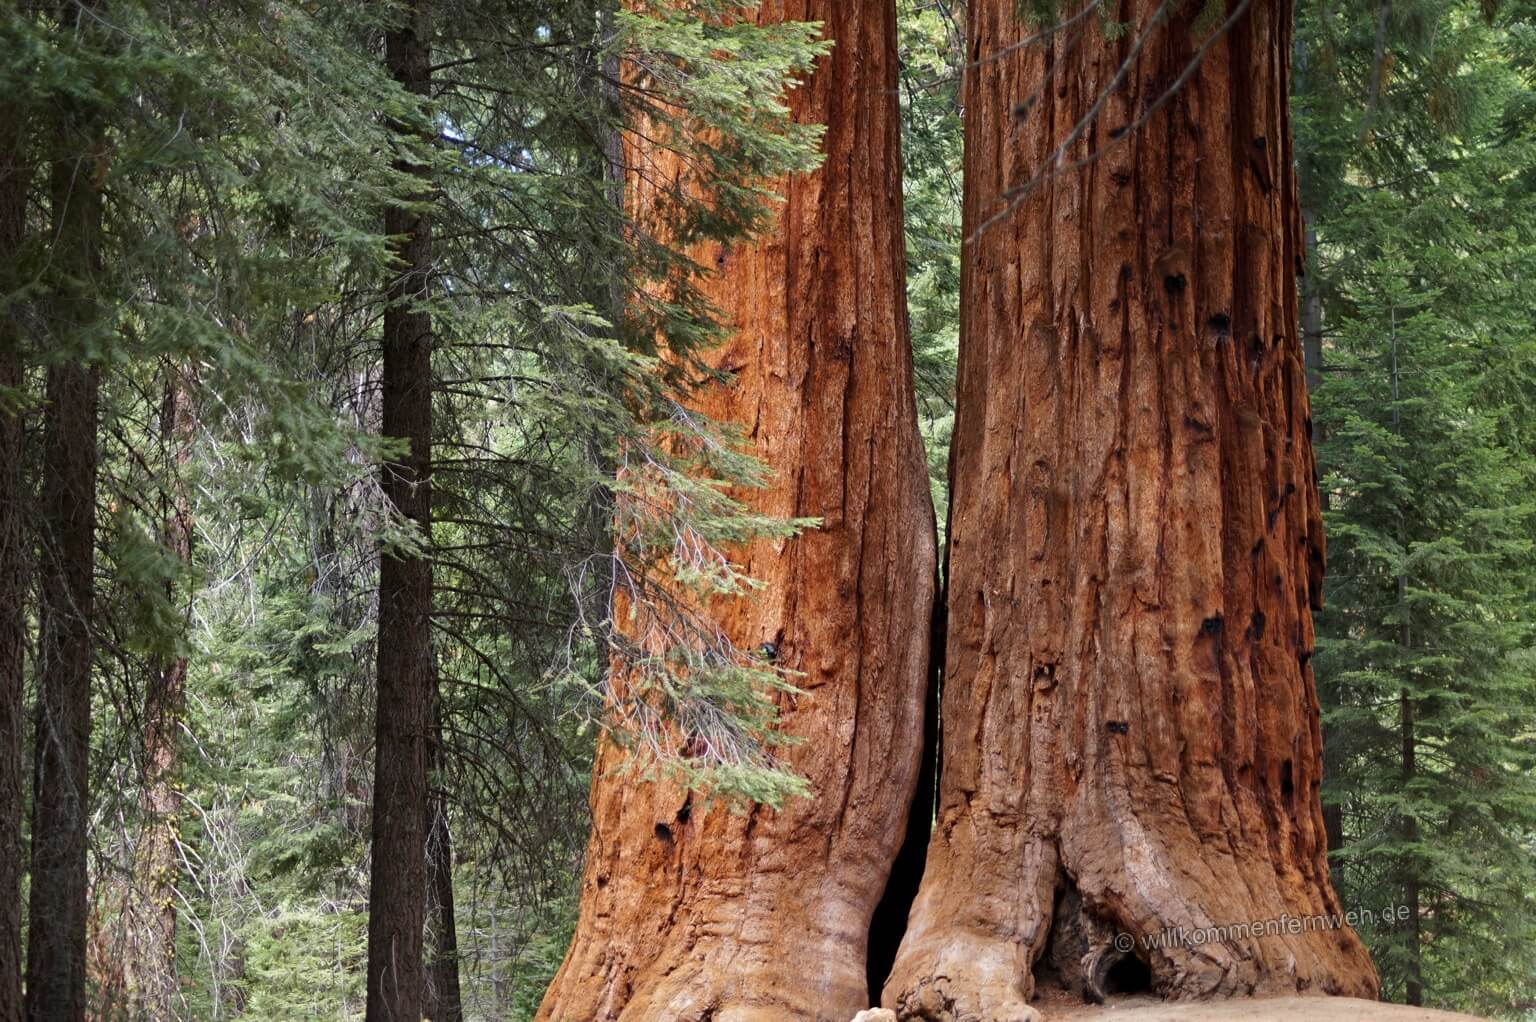 Sequoia-Paar am Trail of 100 Giants